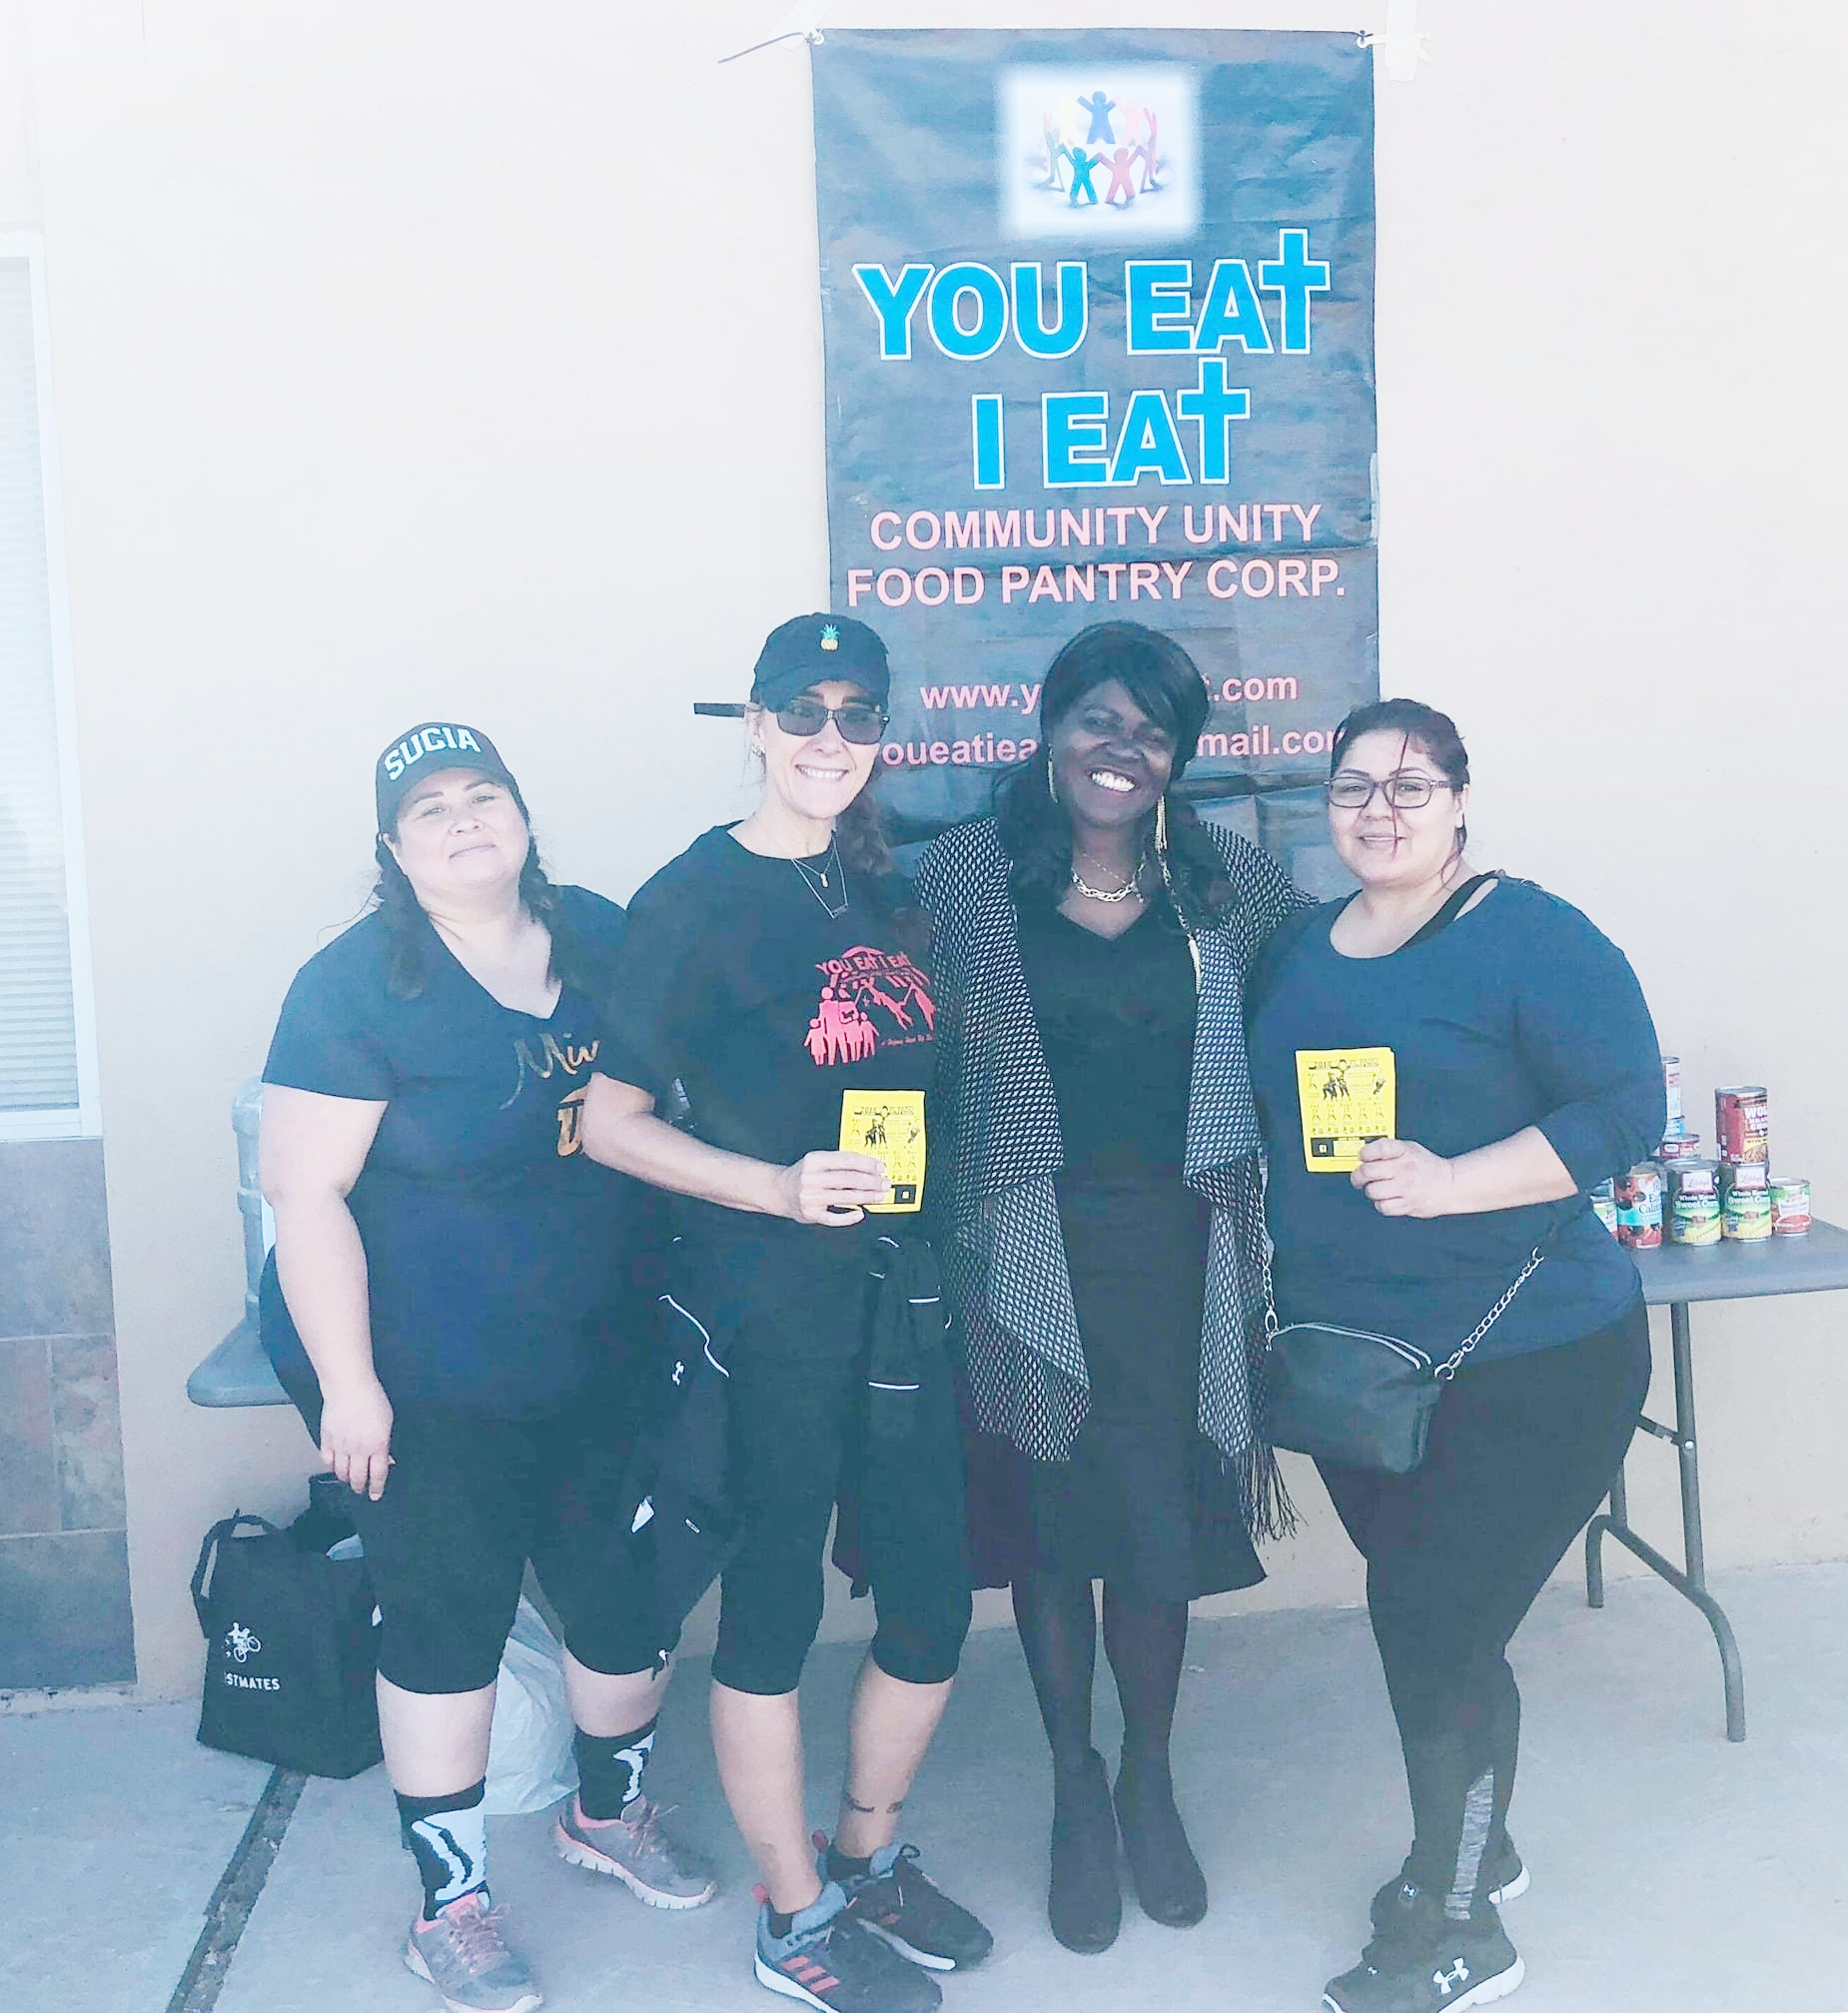 The El Paso Roller Derby Team. These ladies have great in Food Drives and Fund Raising efforts. Without your and the help of those of like mind the Pantry shelves could not be restocked. Thanks, guys!